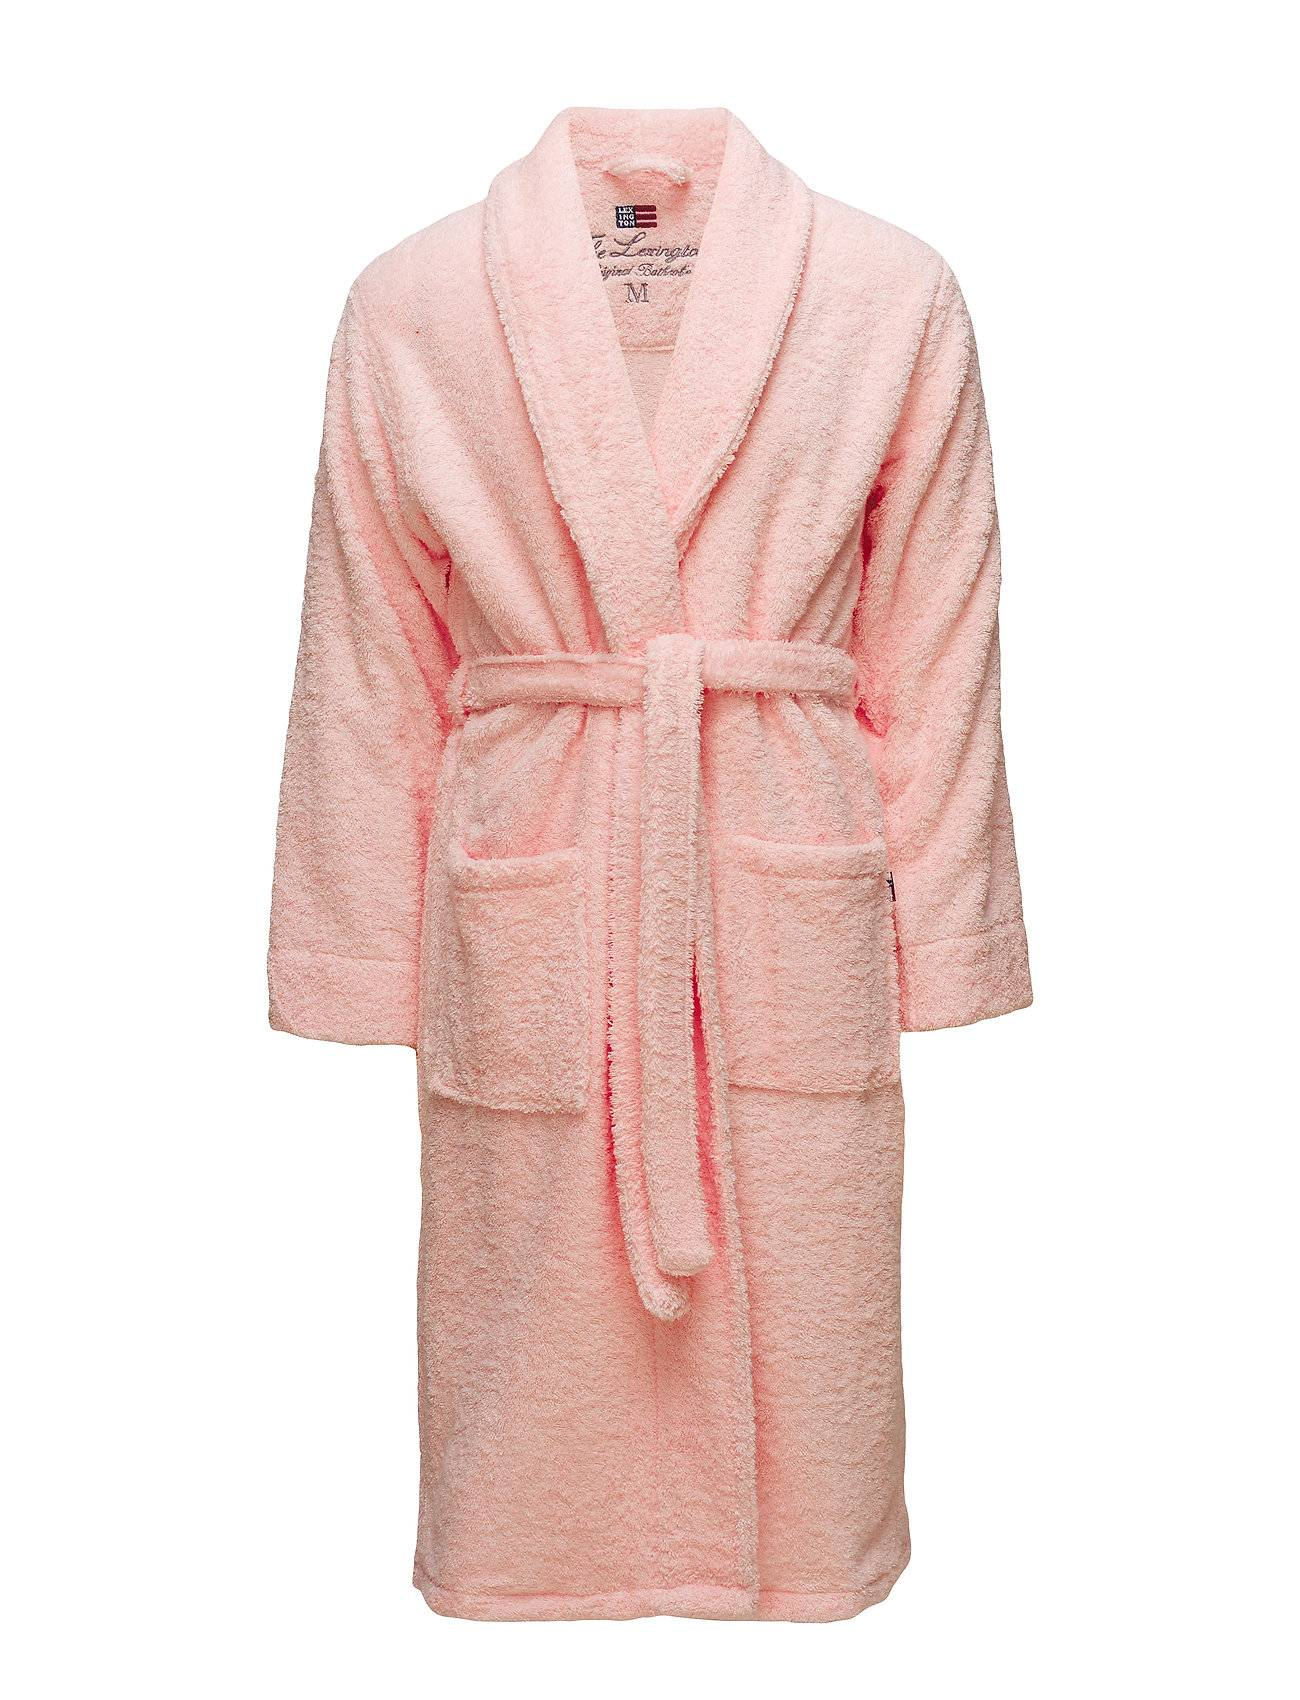 Lexington Home Lexington Original Bathrobe